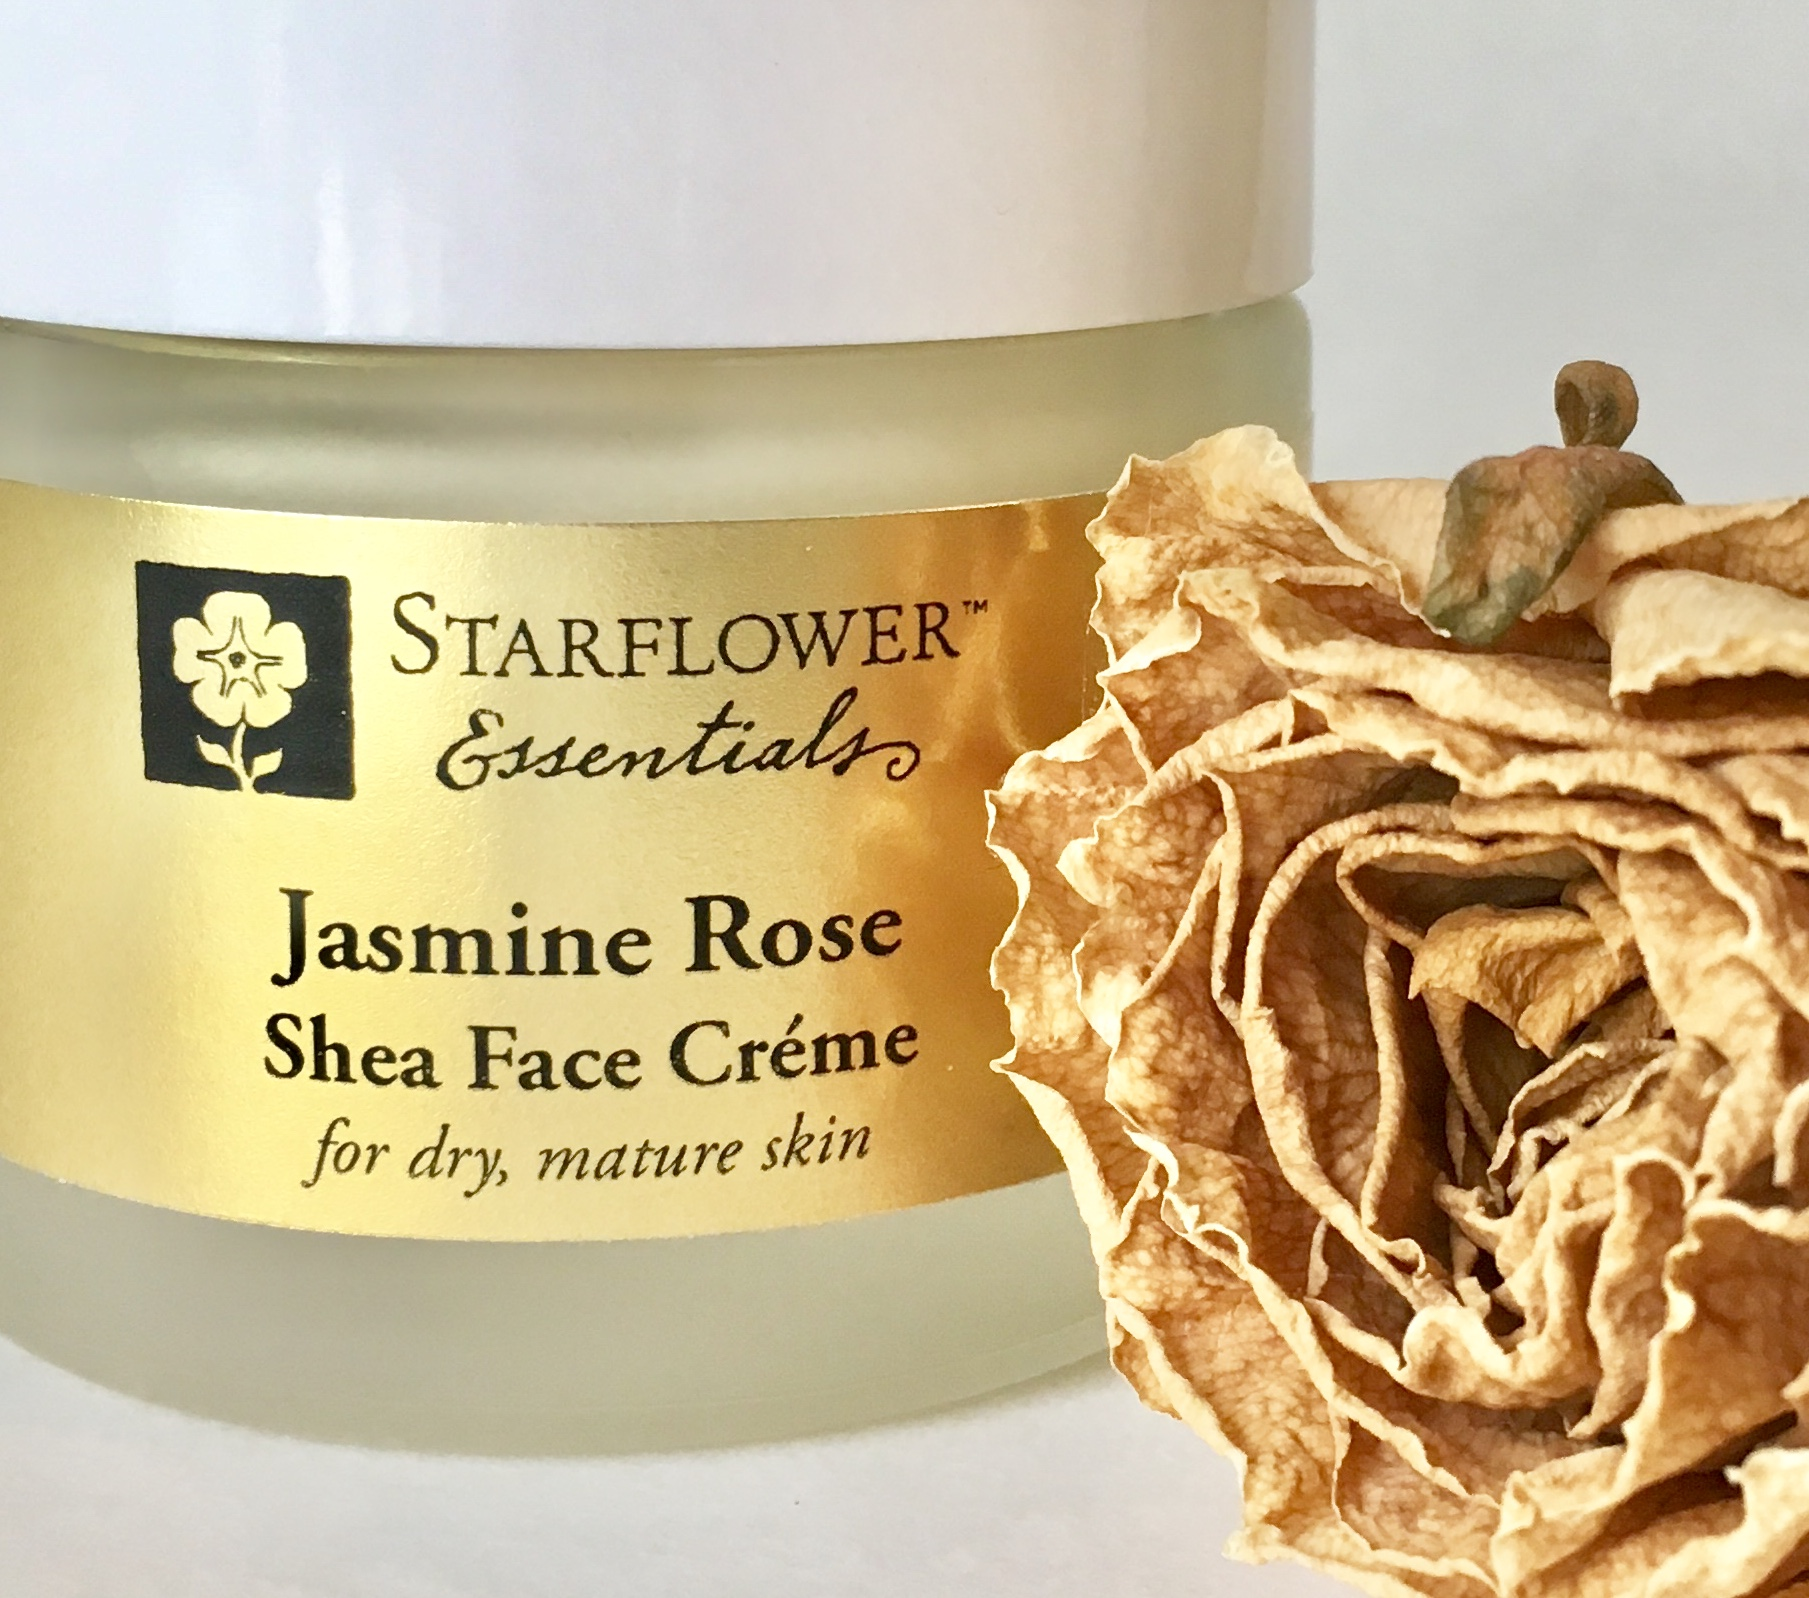 The NEW Jasmine Rose Shea Face Crème